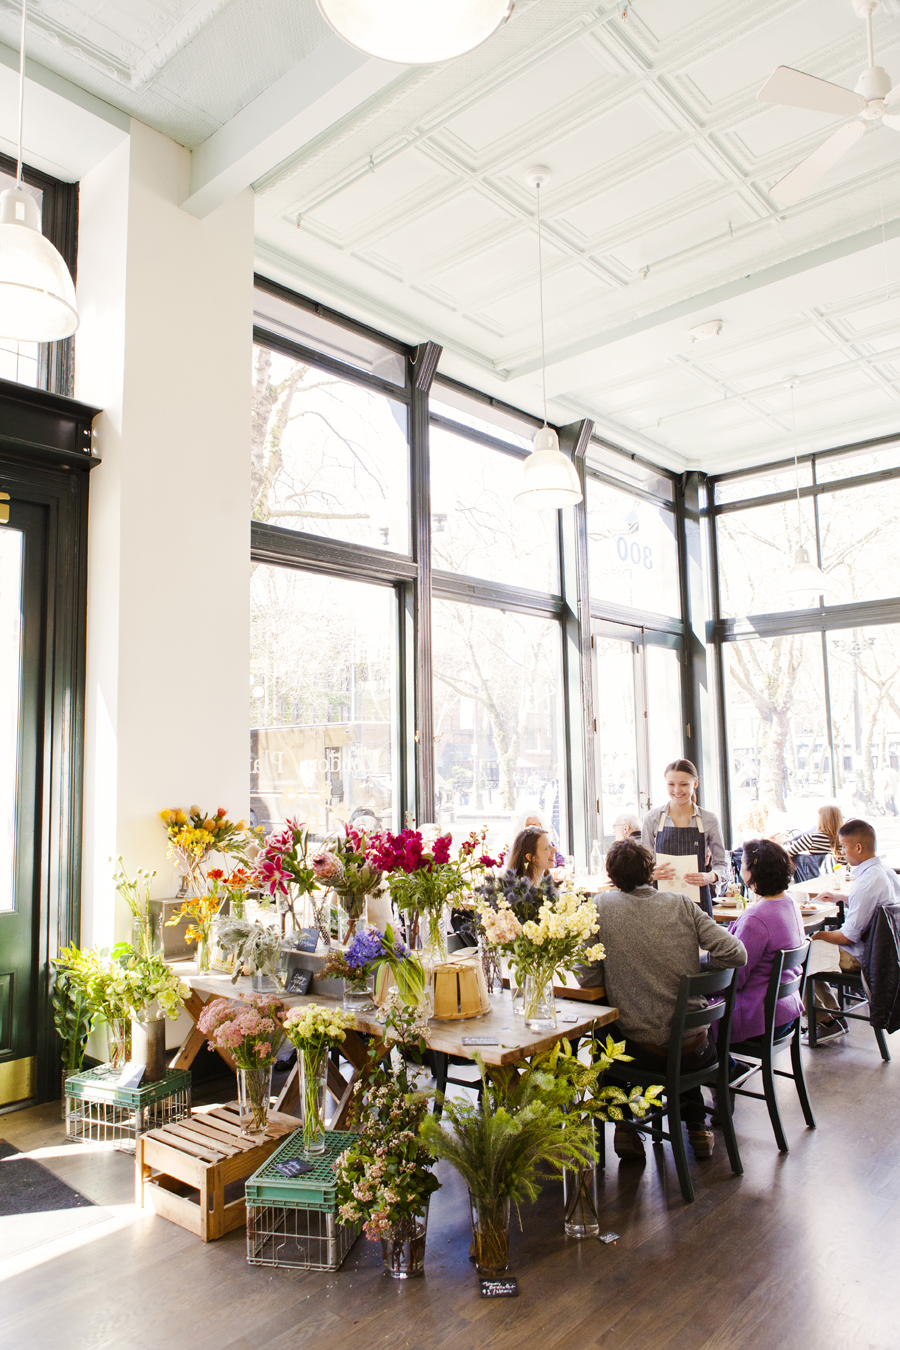 London Plane Cafe + Flowers